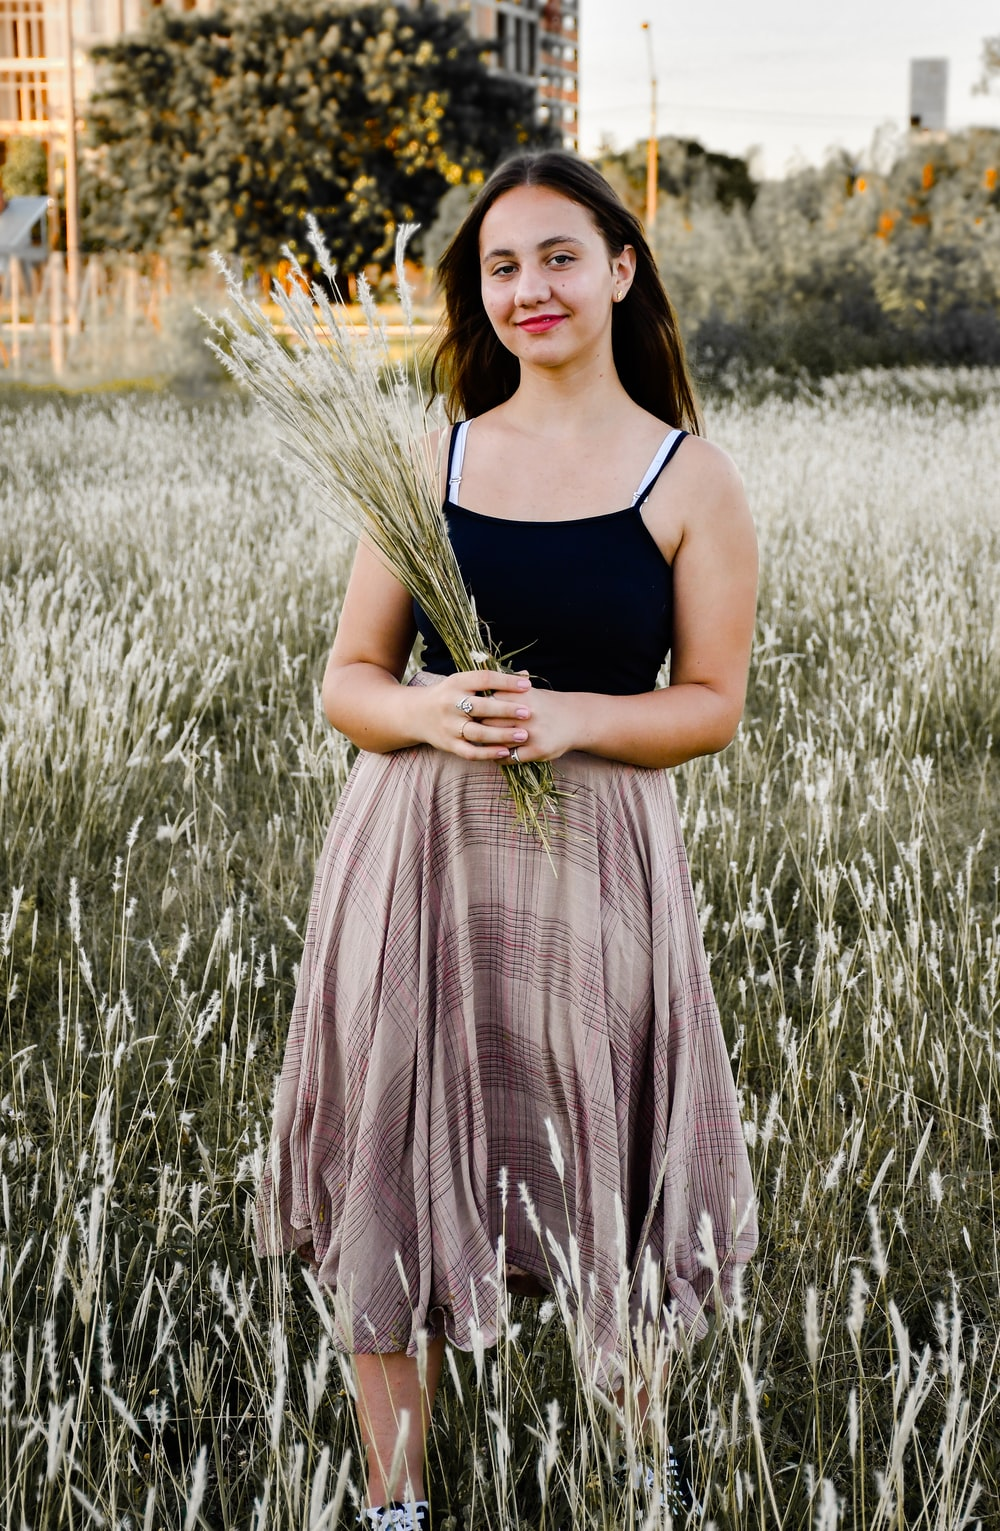 woman in black tank top and gray and white plaid skirt standing on grass field